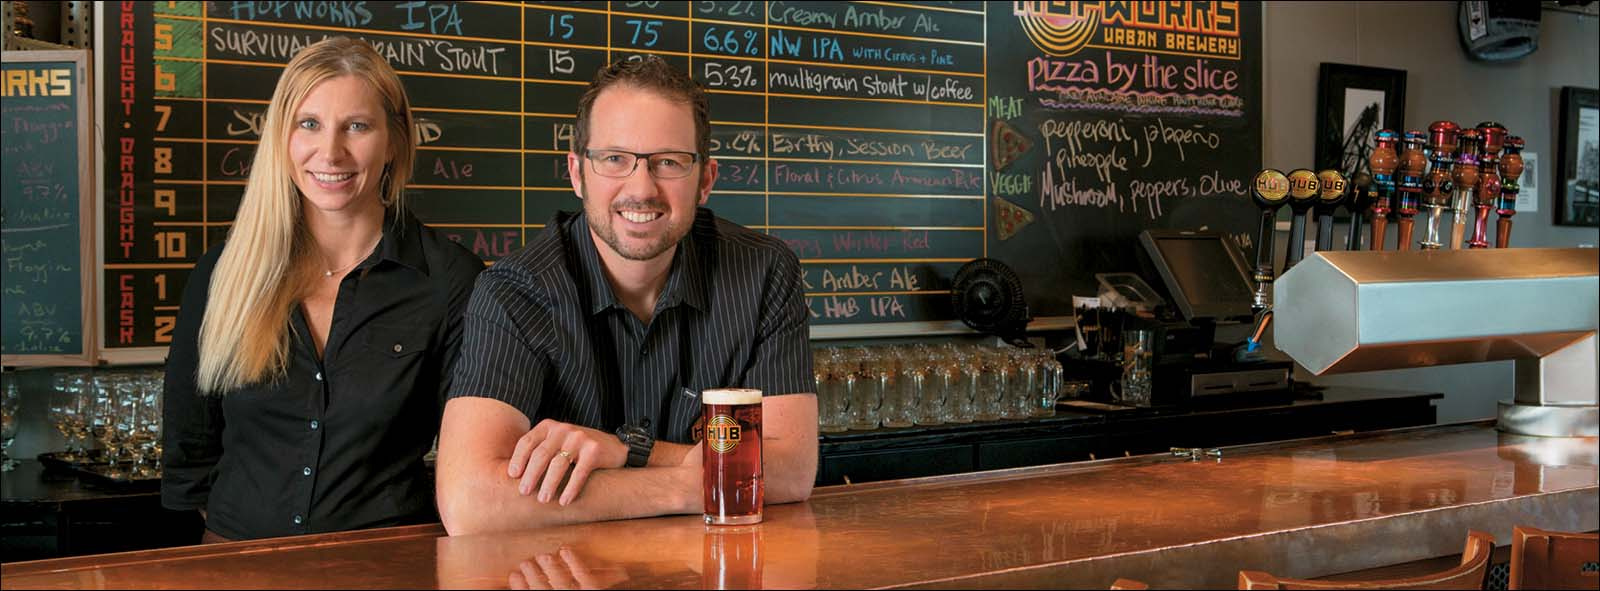 Select to access video of First Republic Small Businesses client(s) Hopworks Urban Brewery